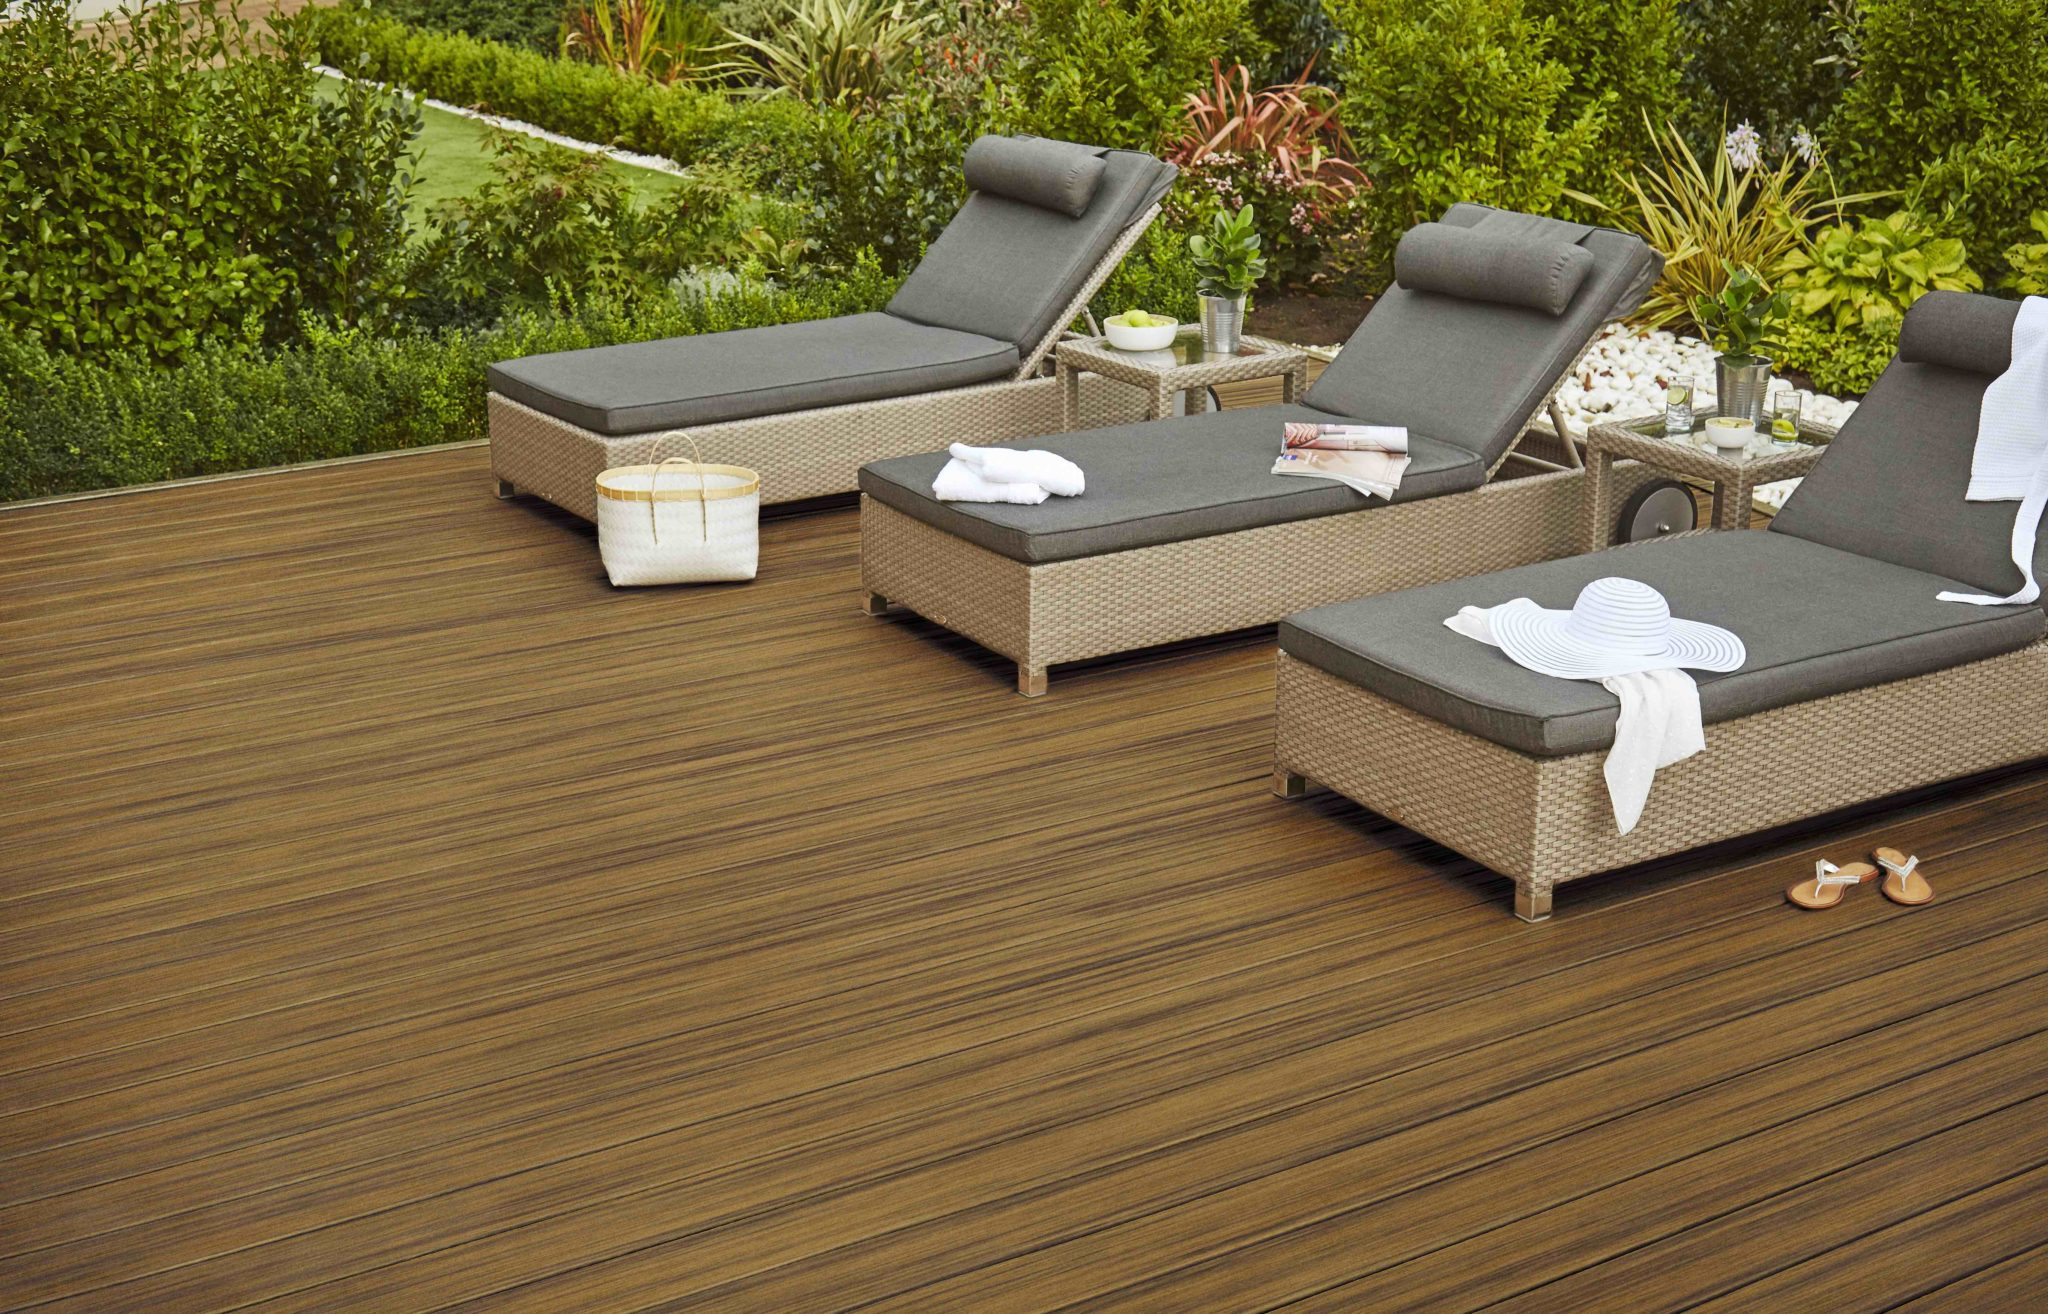 Timber decking wood decking balcony flooring singapore for Timber decking seconds